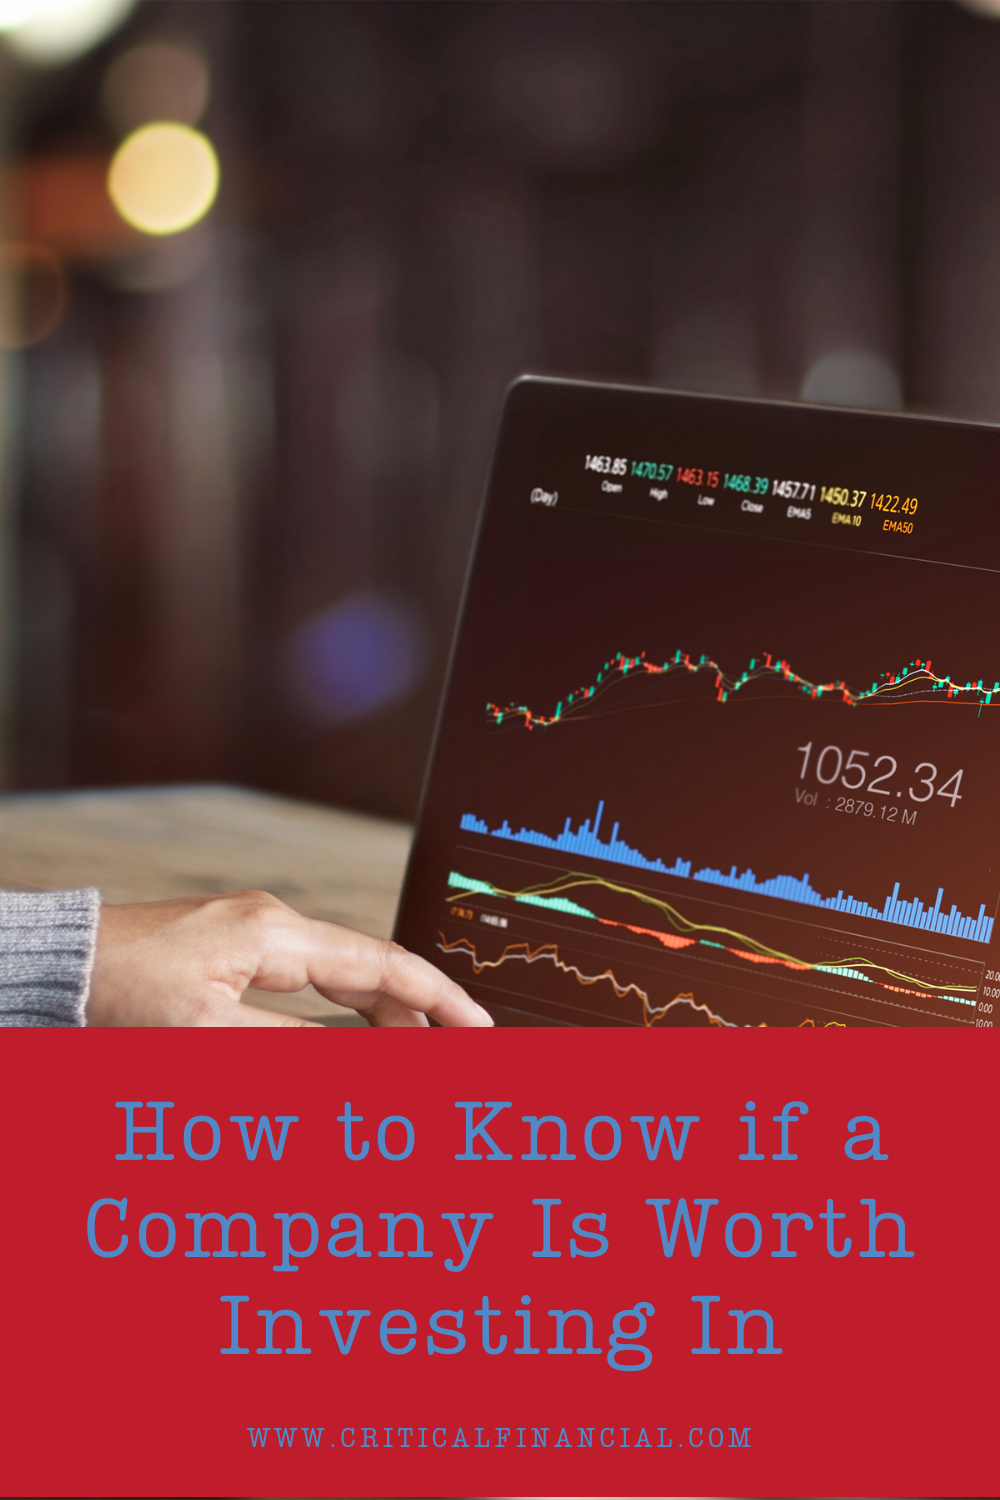 How to Know if a Company Is Worth Investing In